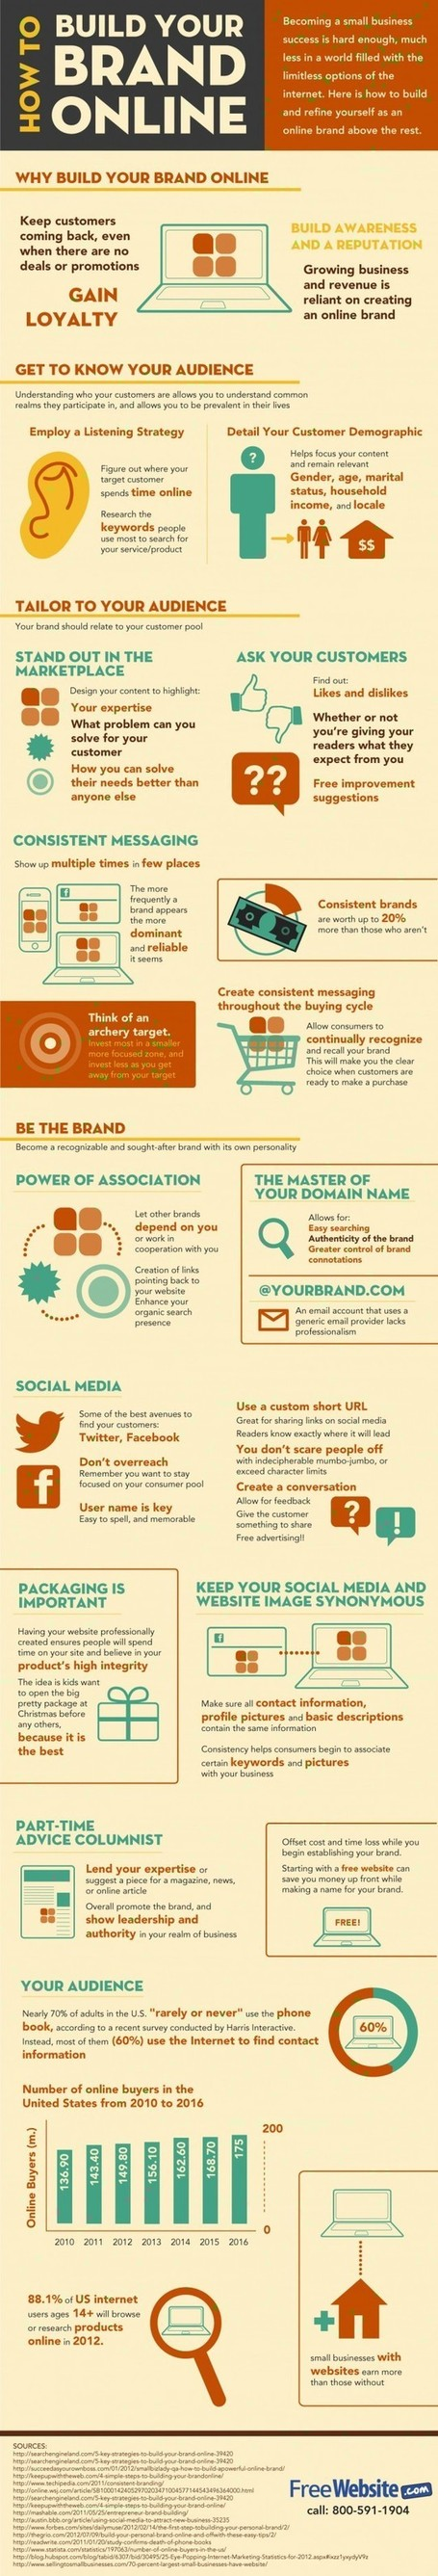 Why You Need to Build Your Brand Online [infographic] | How to Market Your Small Business | Scoop.it